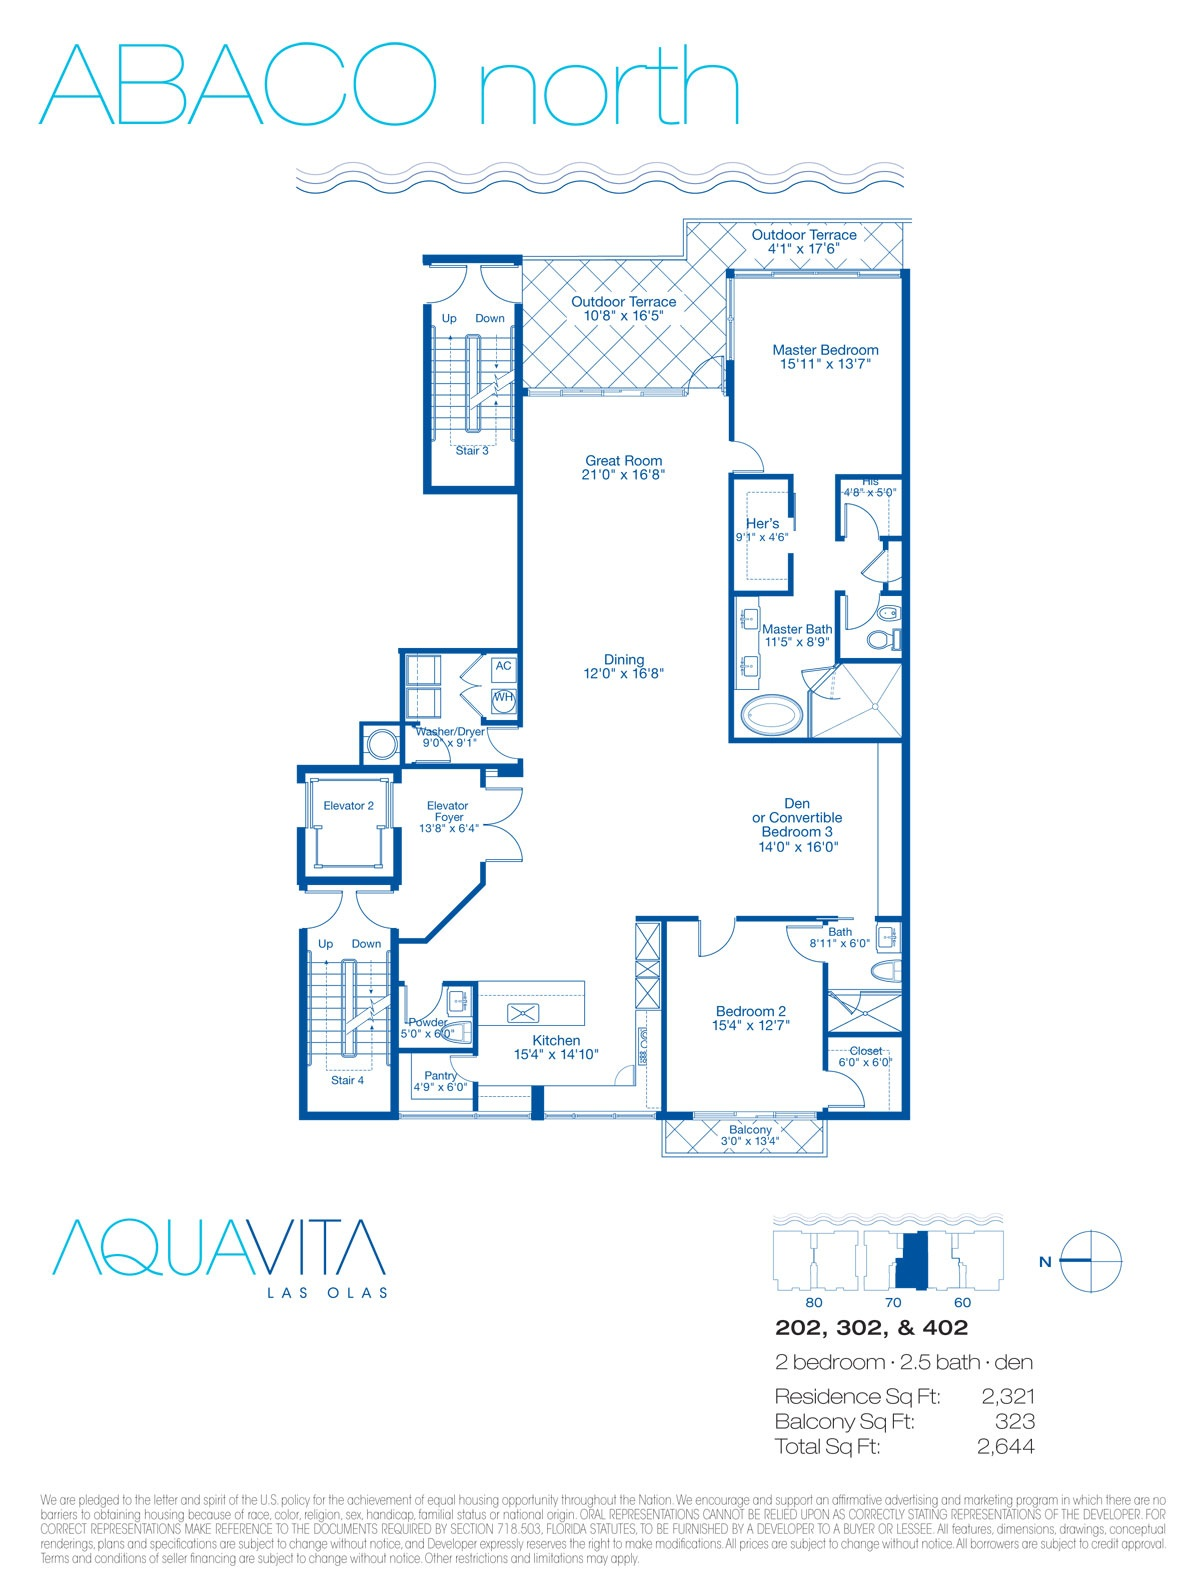 Aquavita Las Olas - Floorplan 1